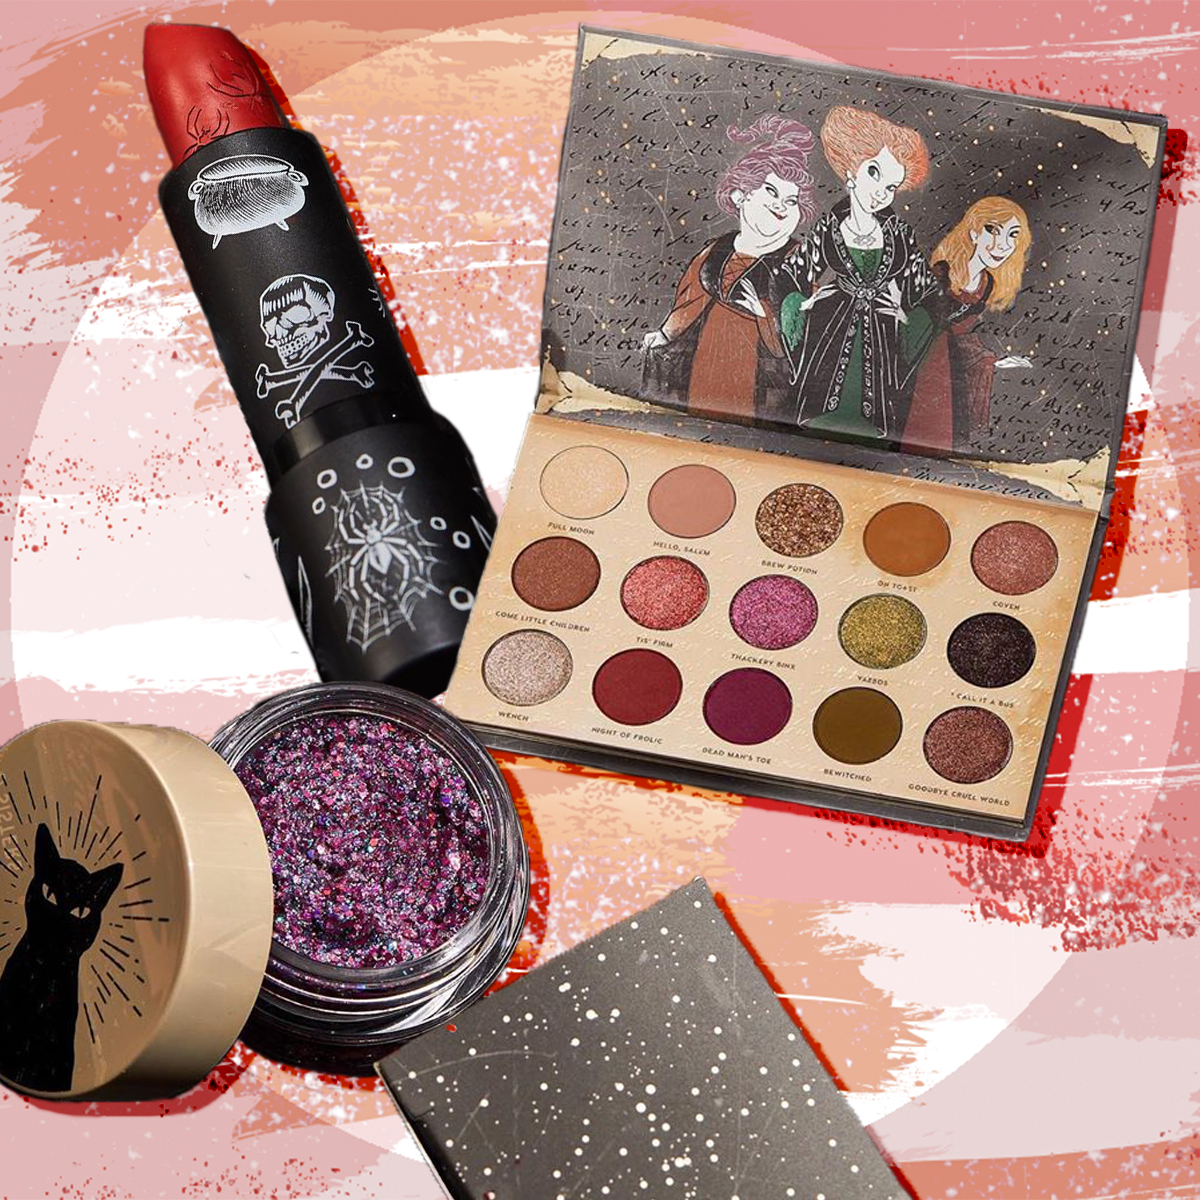 The ColourPop x Hocus Pocus Collab Is Totally Bewitching